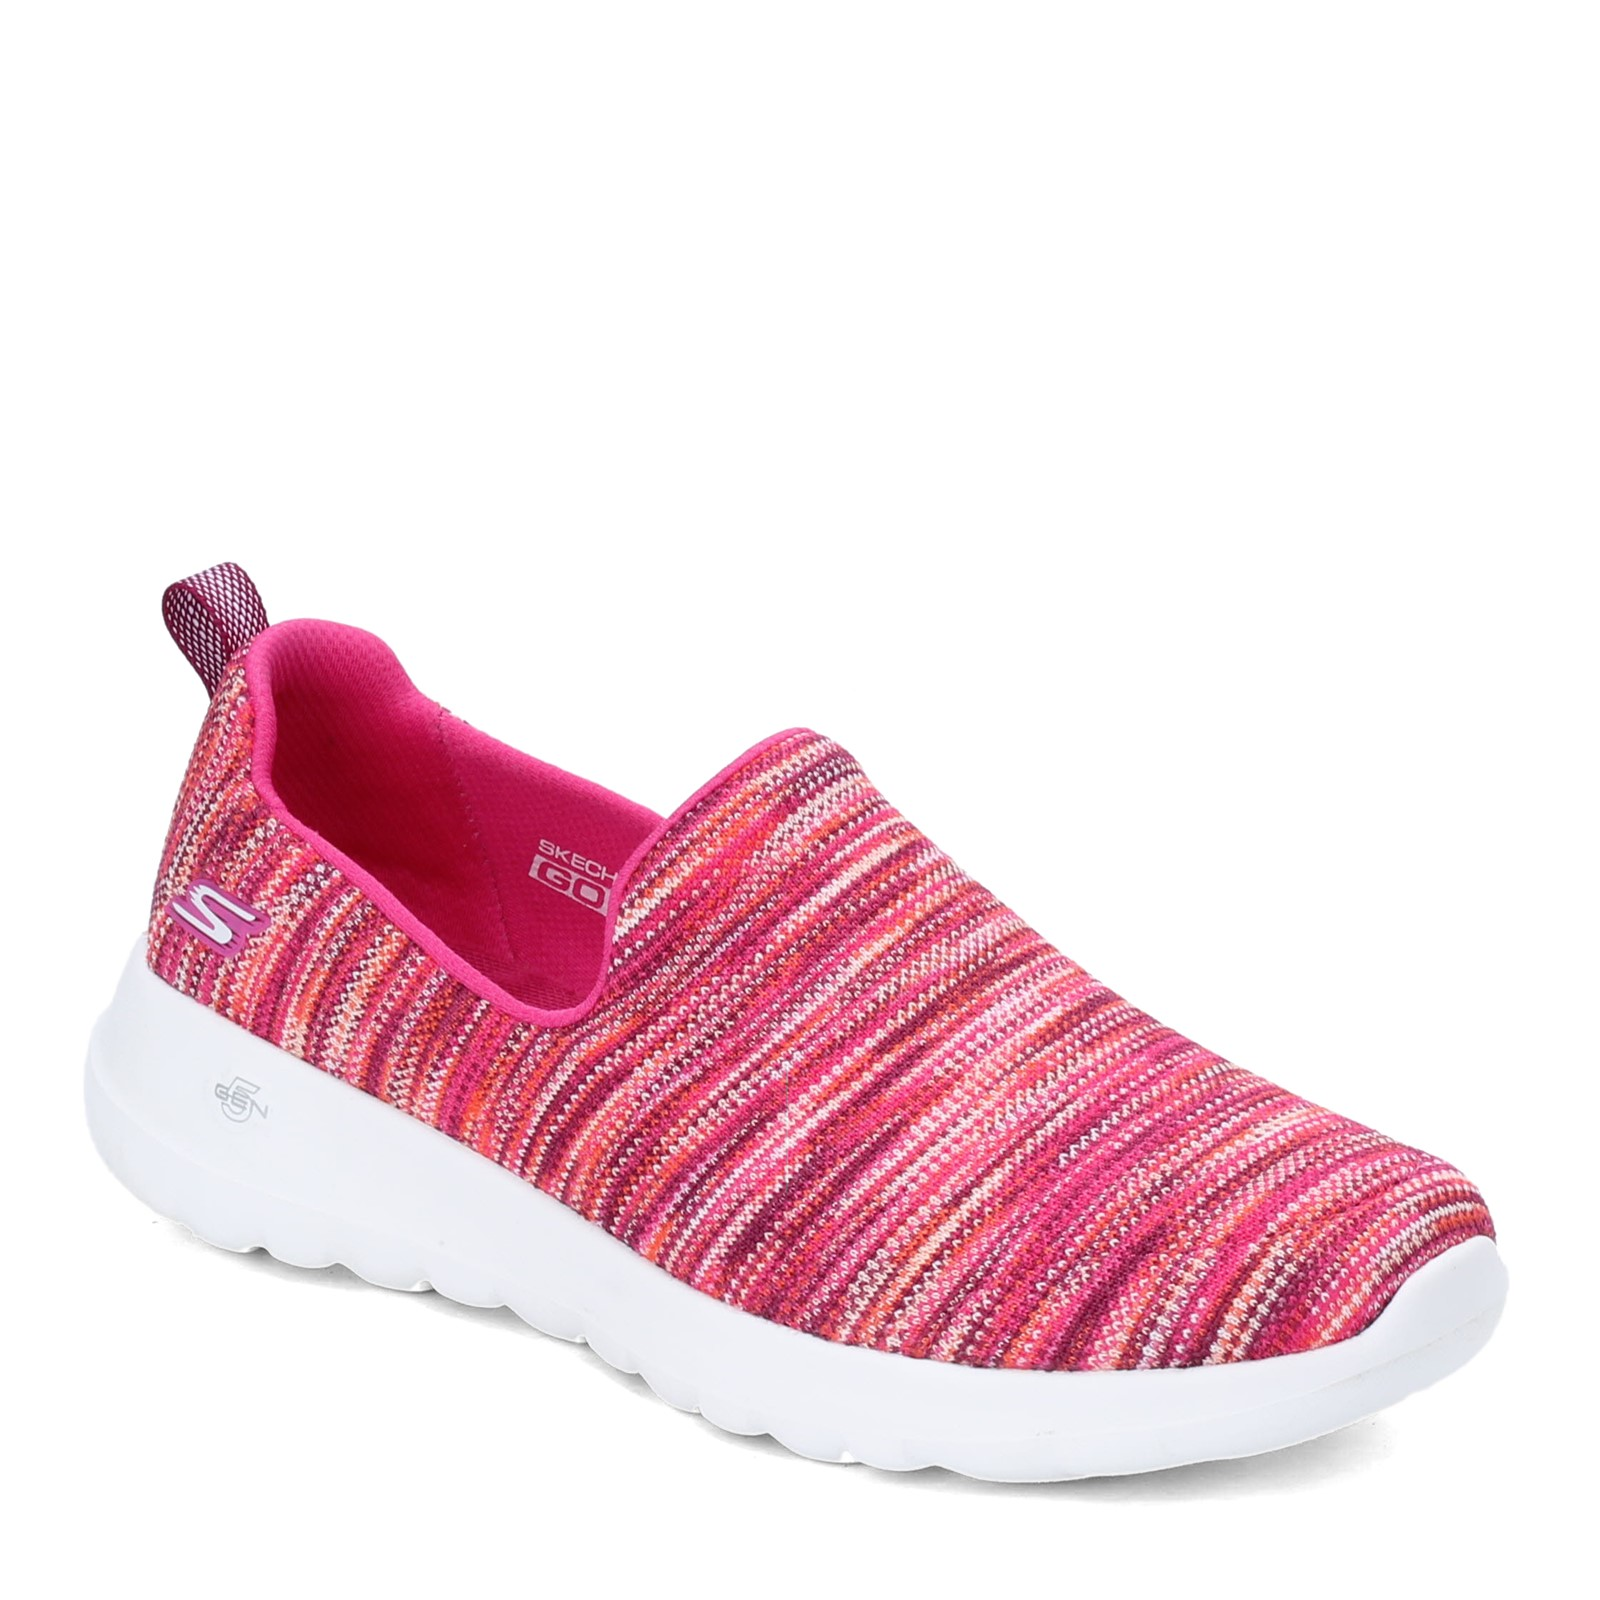 30e542d88ed5 Home  Women s Skechers Performance